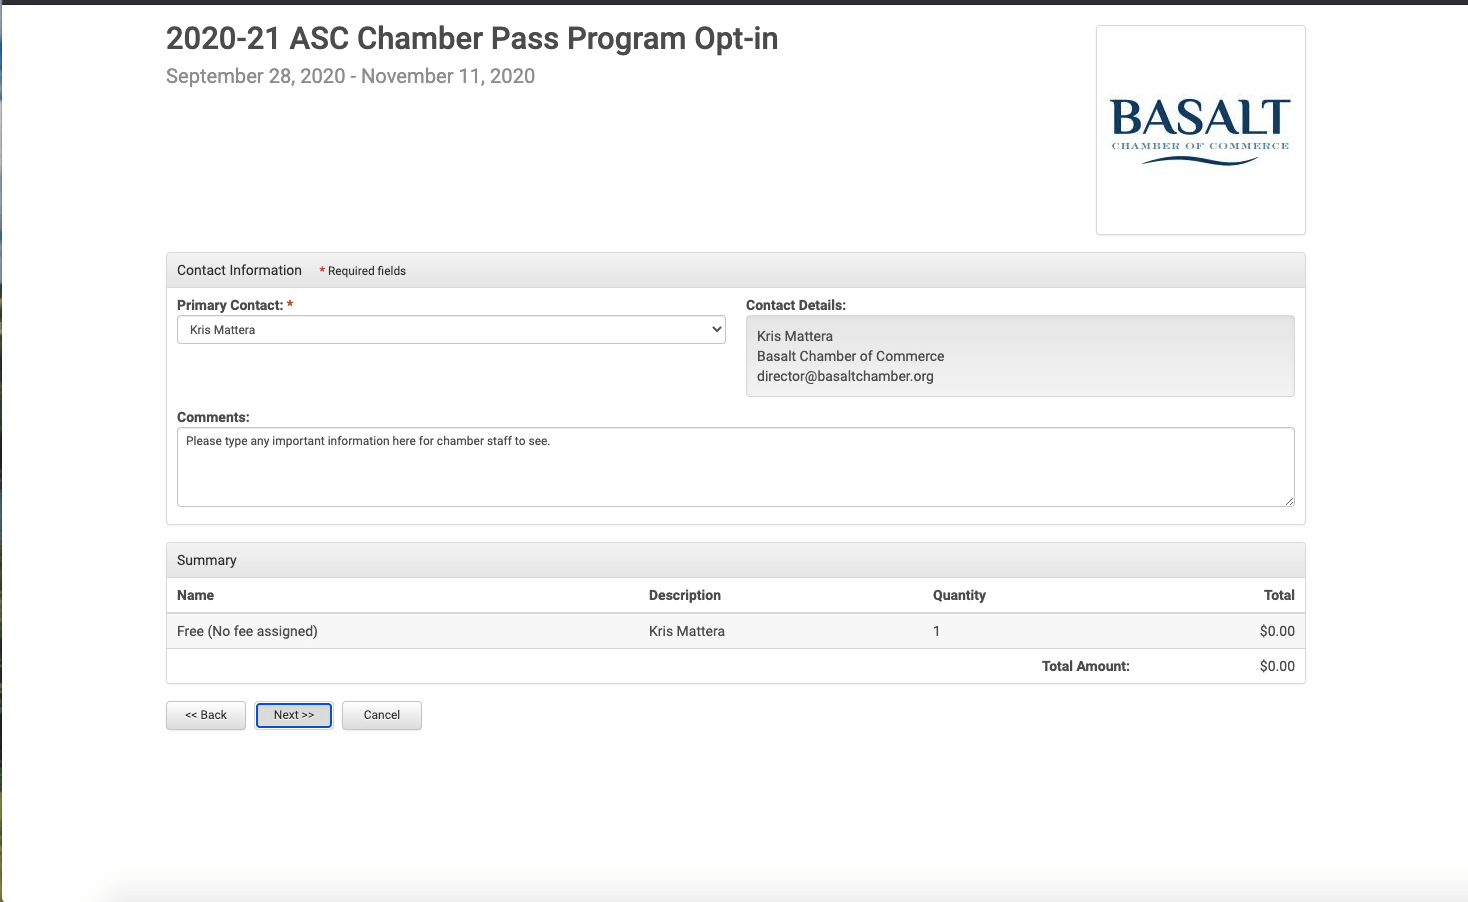 Chamber Pass Program - Comments